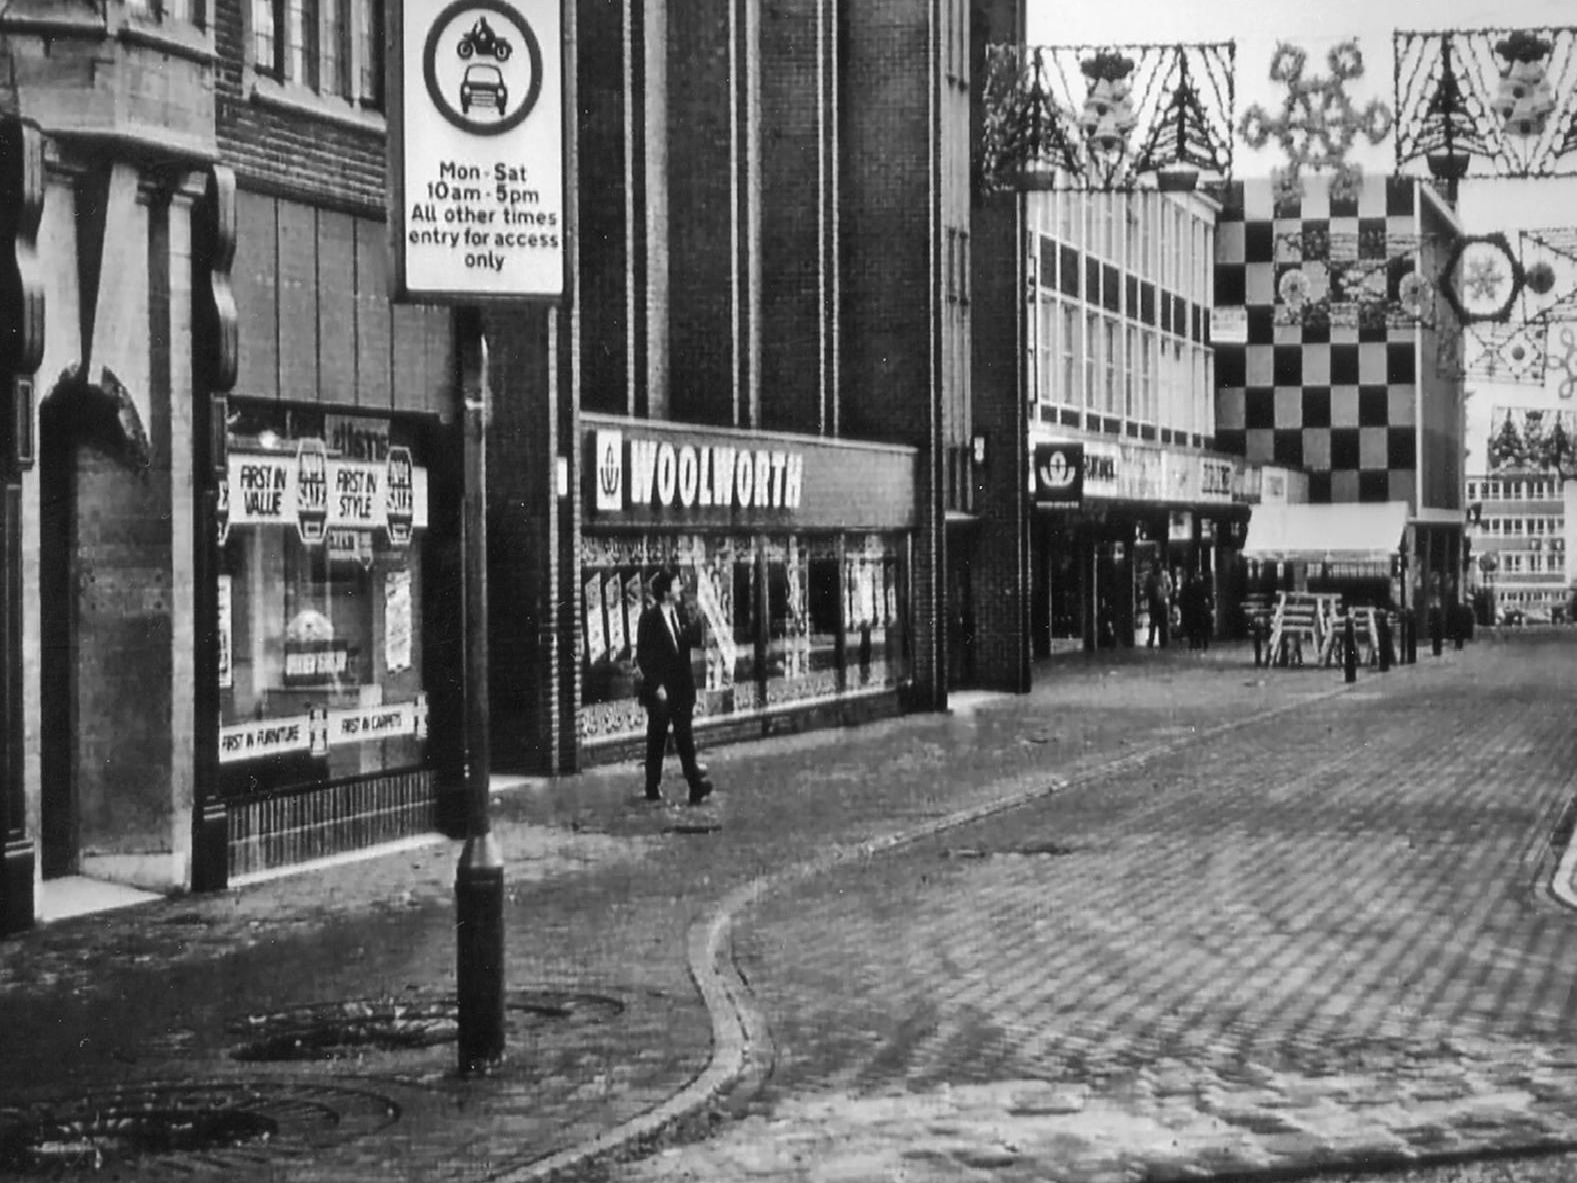 Chesterfield has changed massively over the years